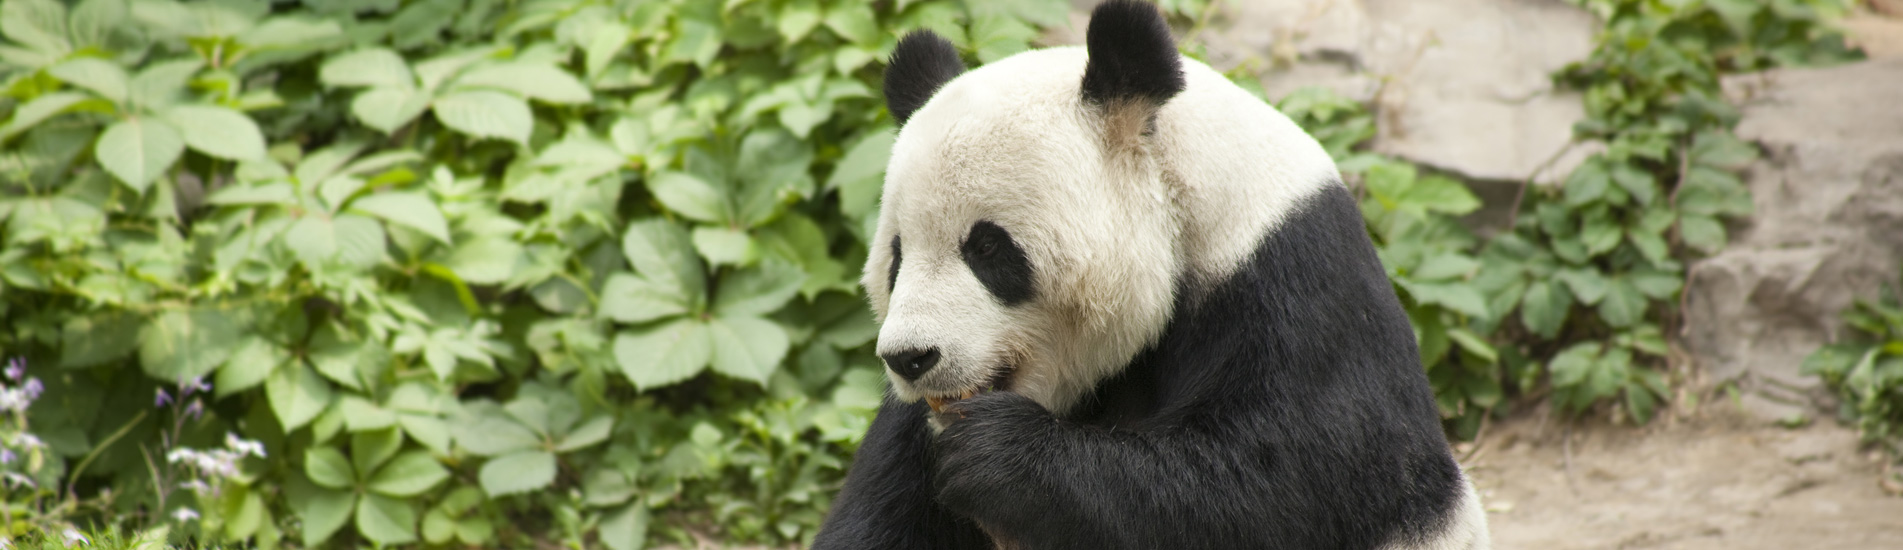 the giant panda eating bamboo